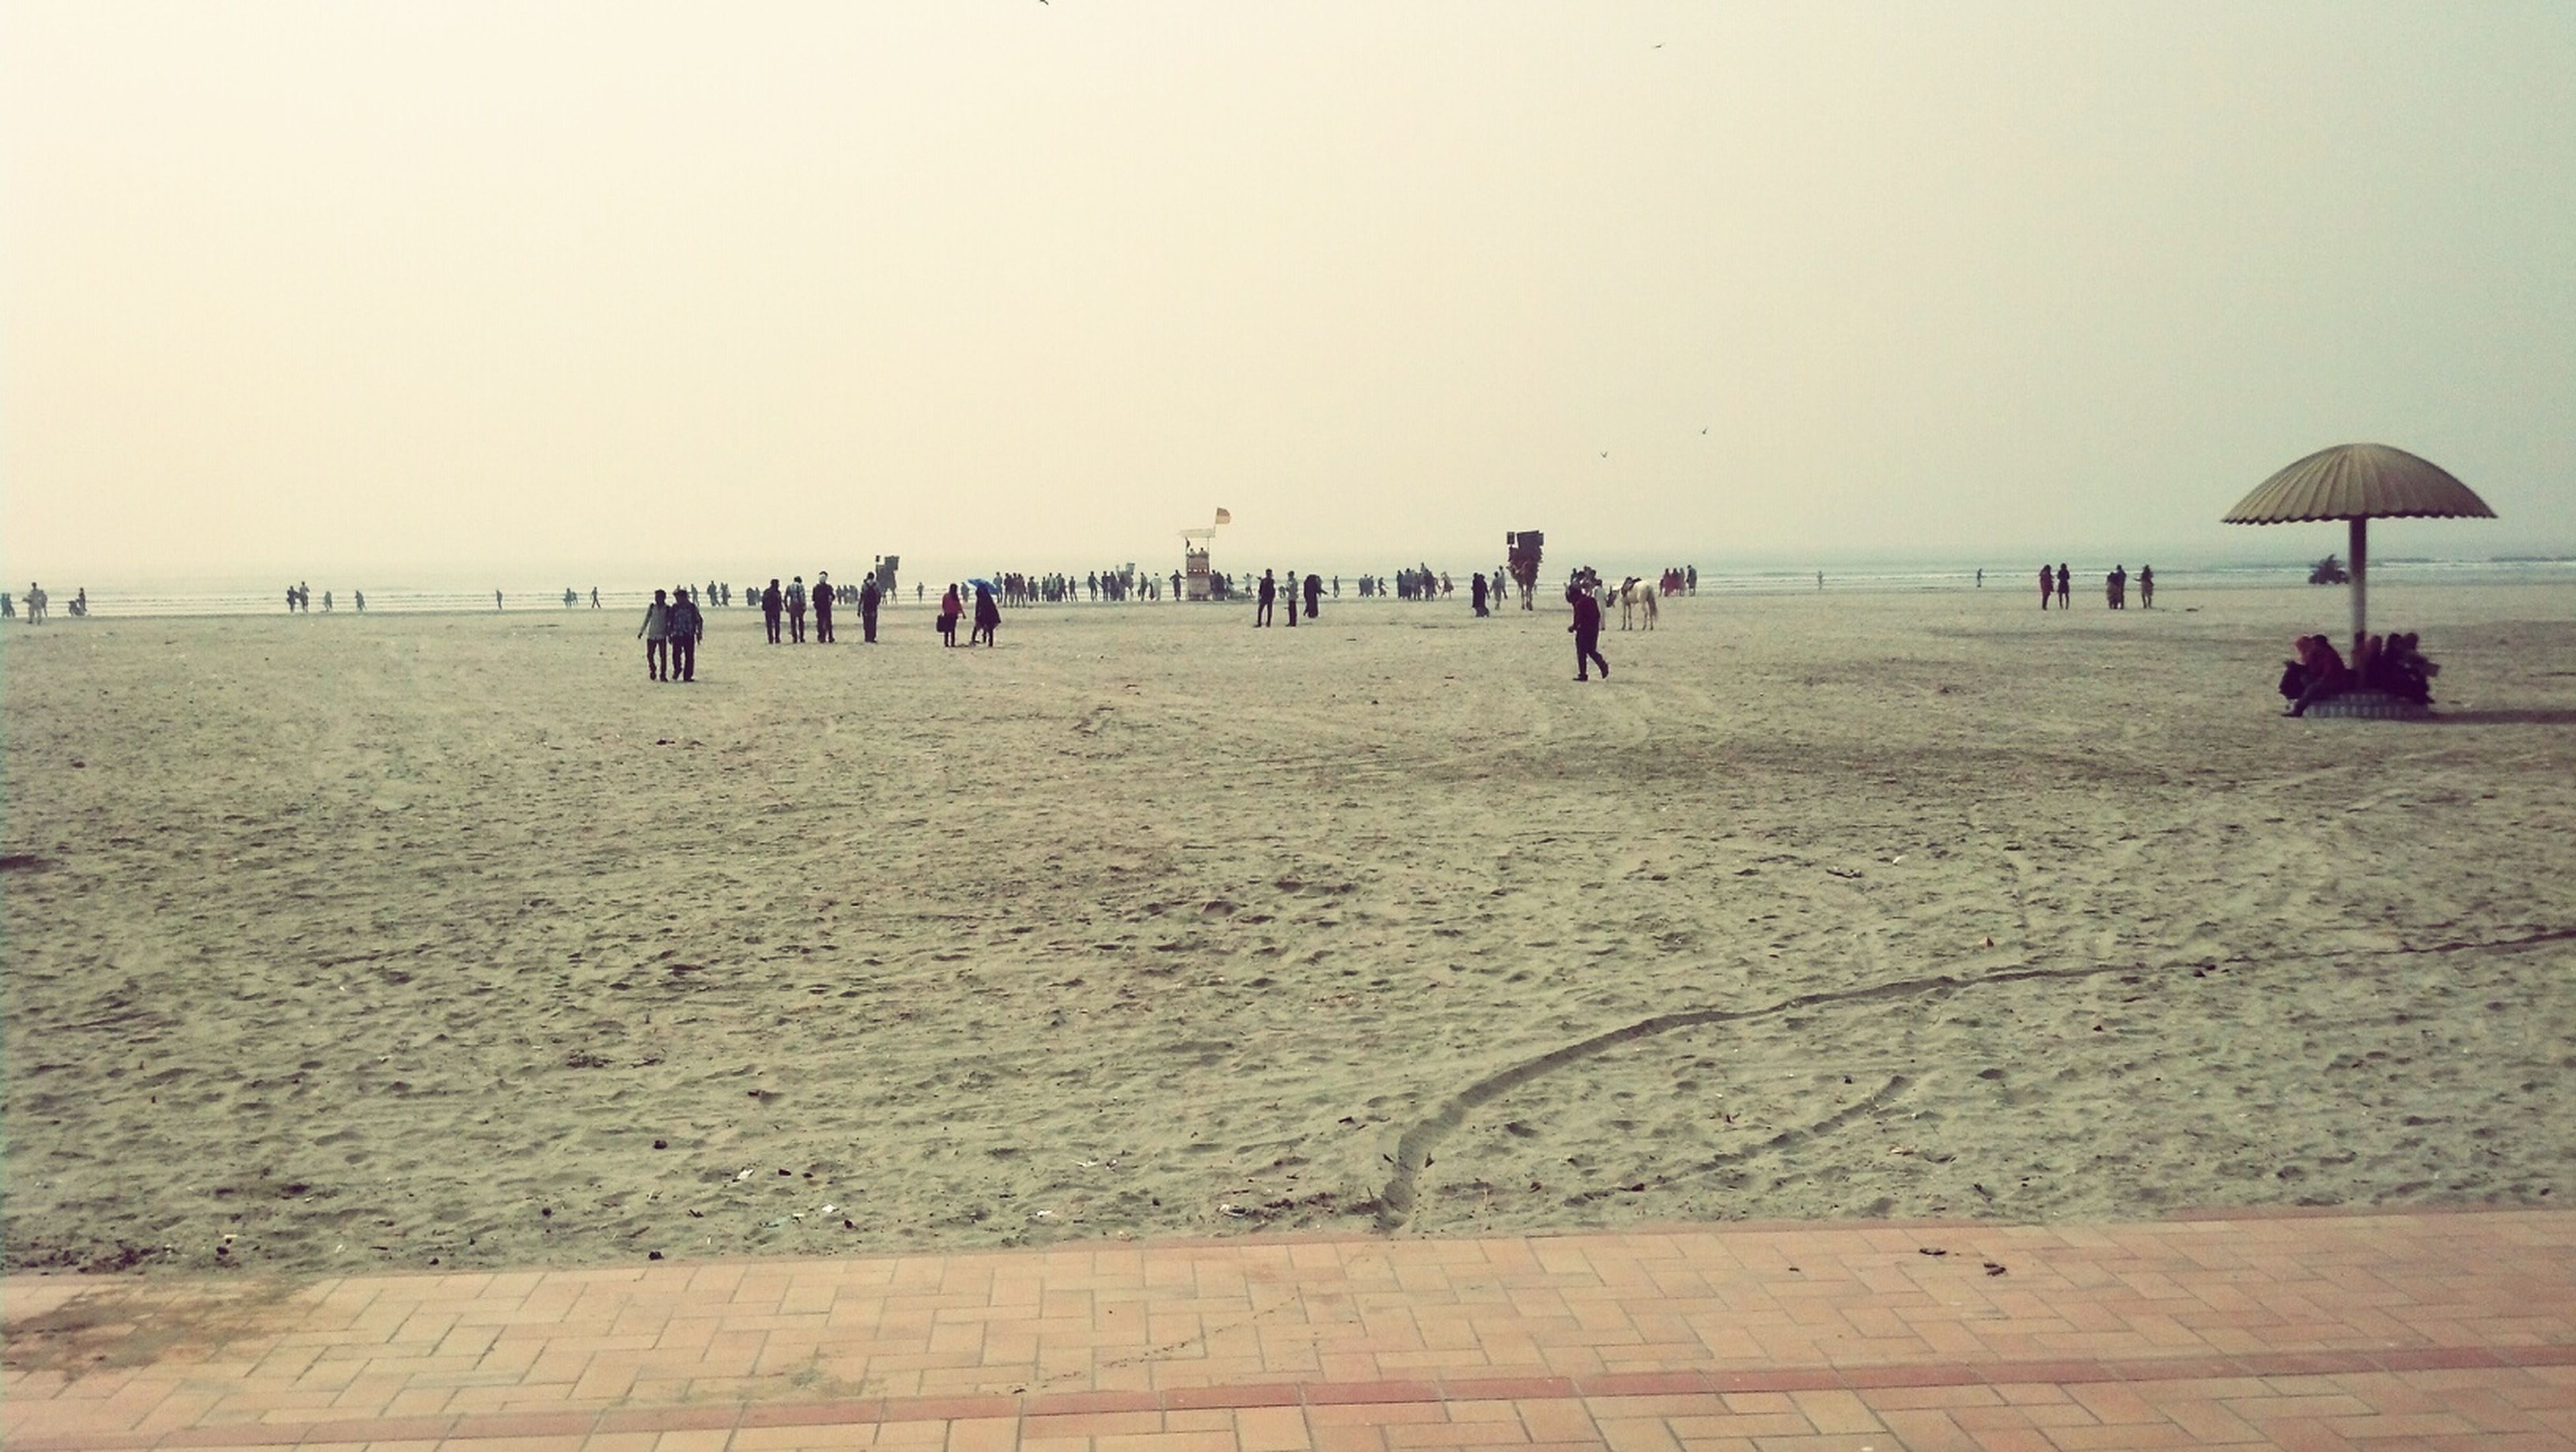 sea, beach, large group of people, water, horizon over water, sand, shore, clear sky, vacations, copy space, leisure activity, mixed age range, lifestyles, men, person, scenics, tranquil scene, nature, beauty in nature